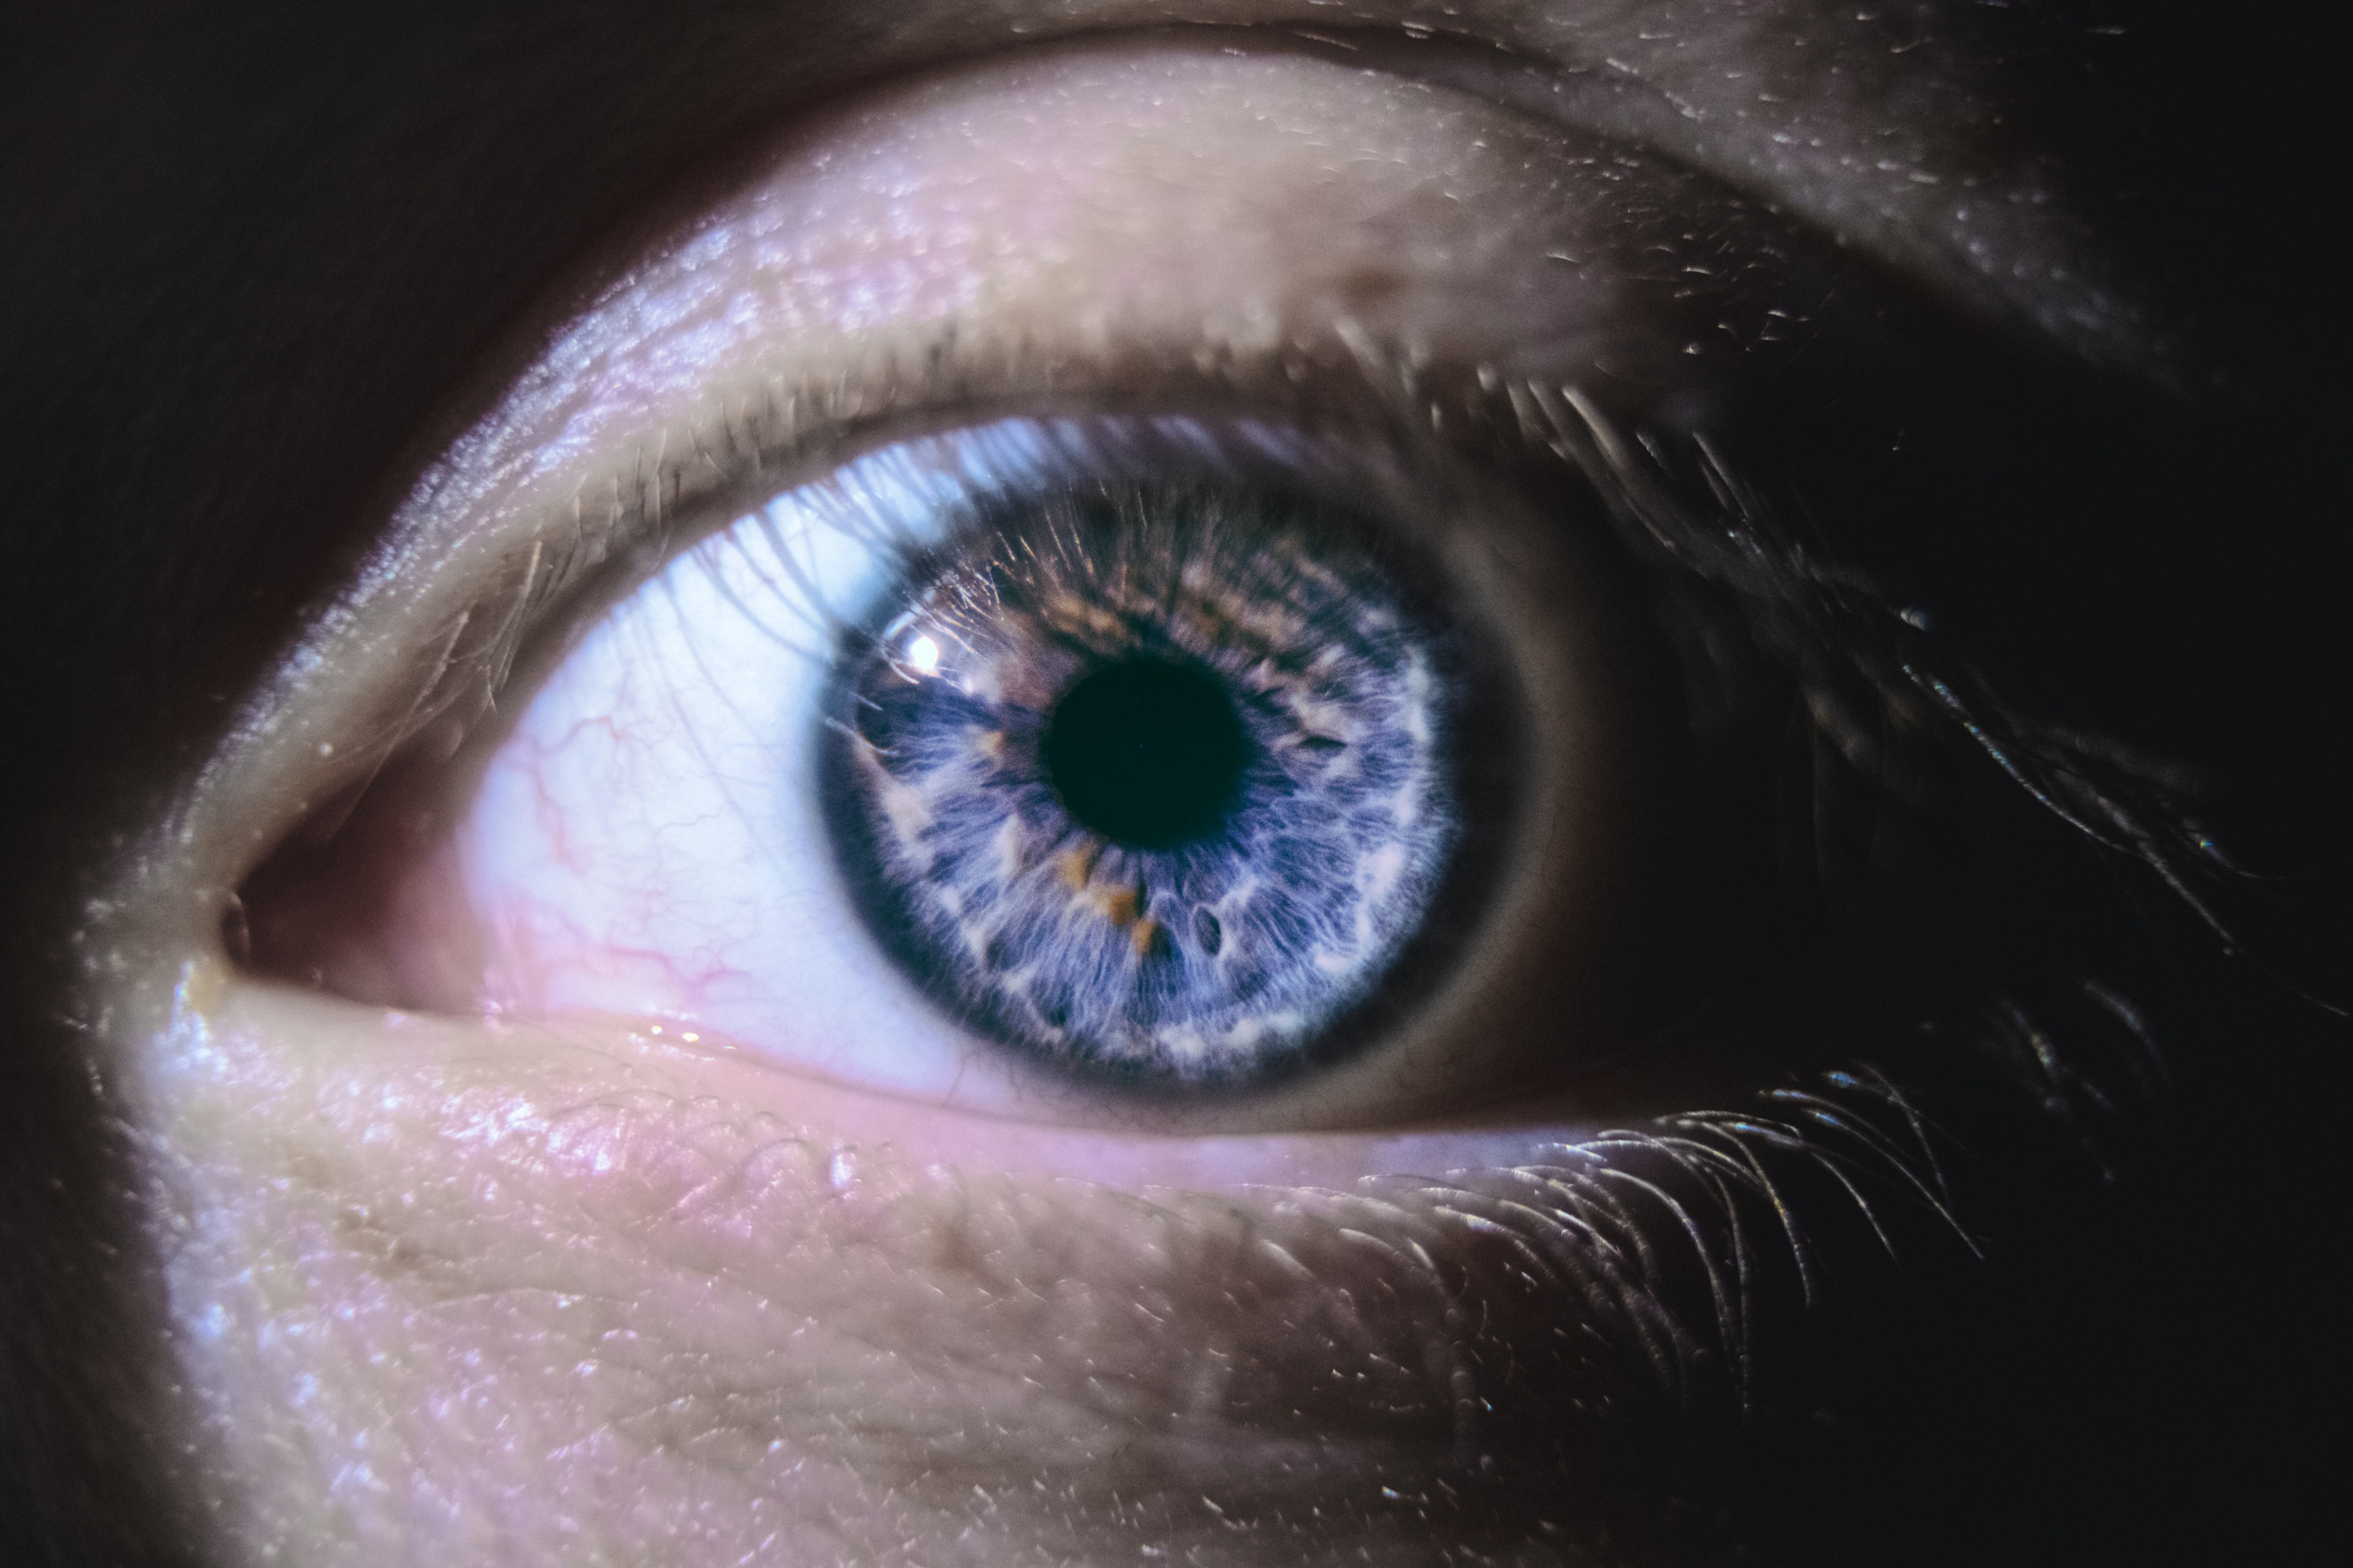 Close up photo of a person's eye